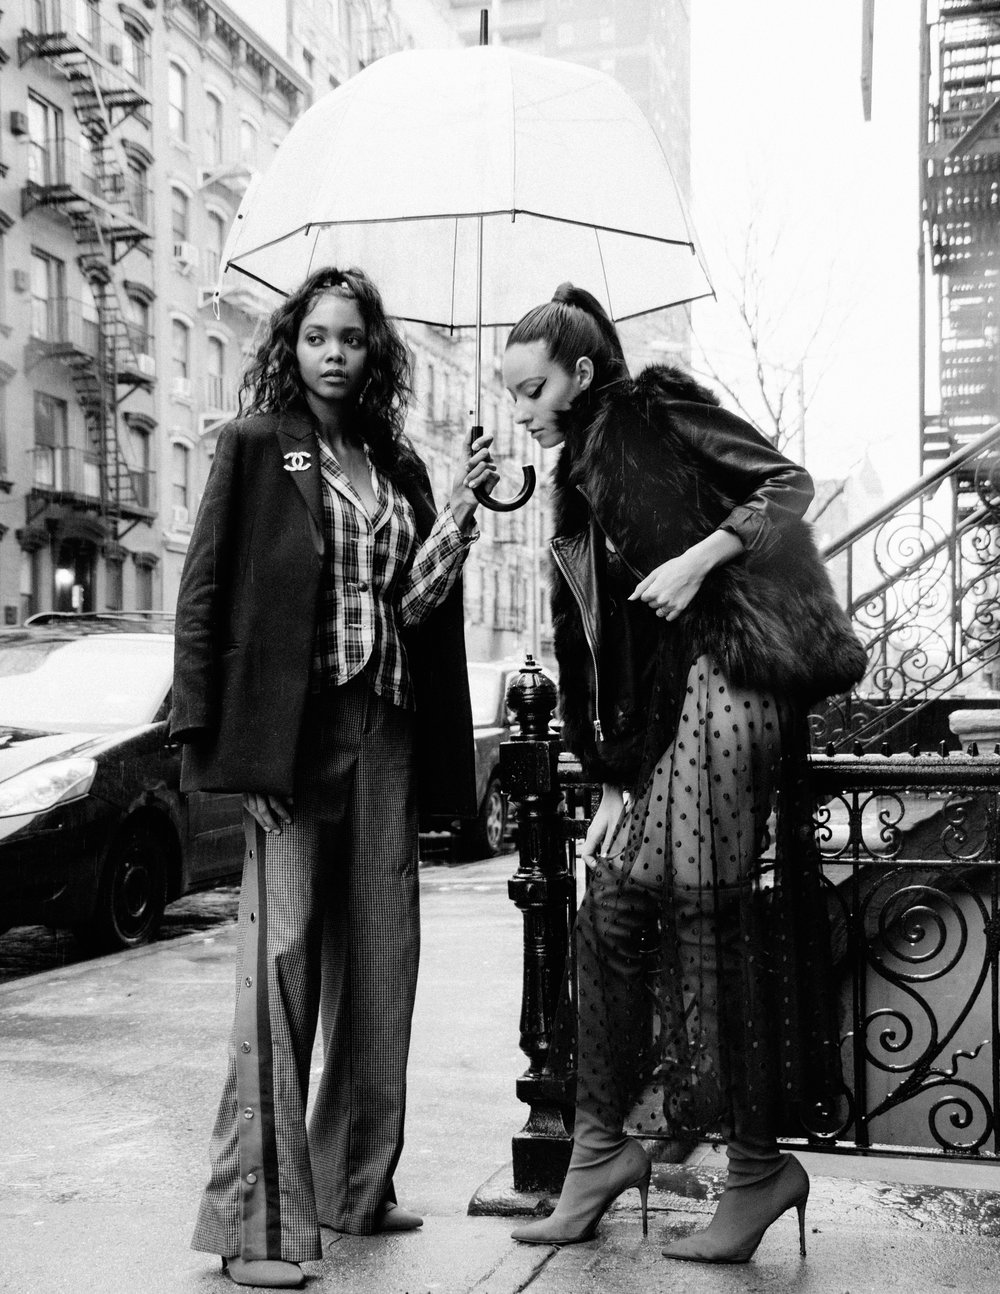 NYCity GIRLS by LIANA CARBONE-7928.jpg